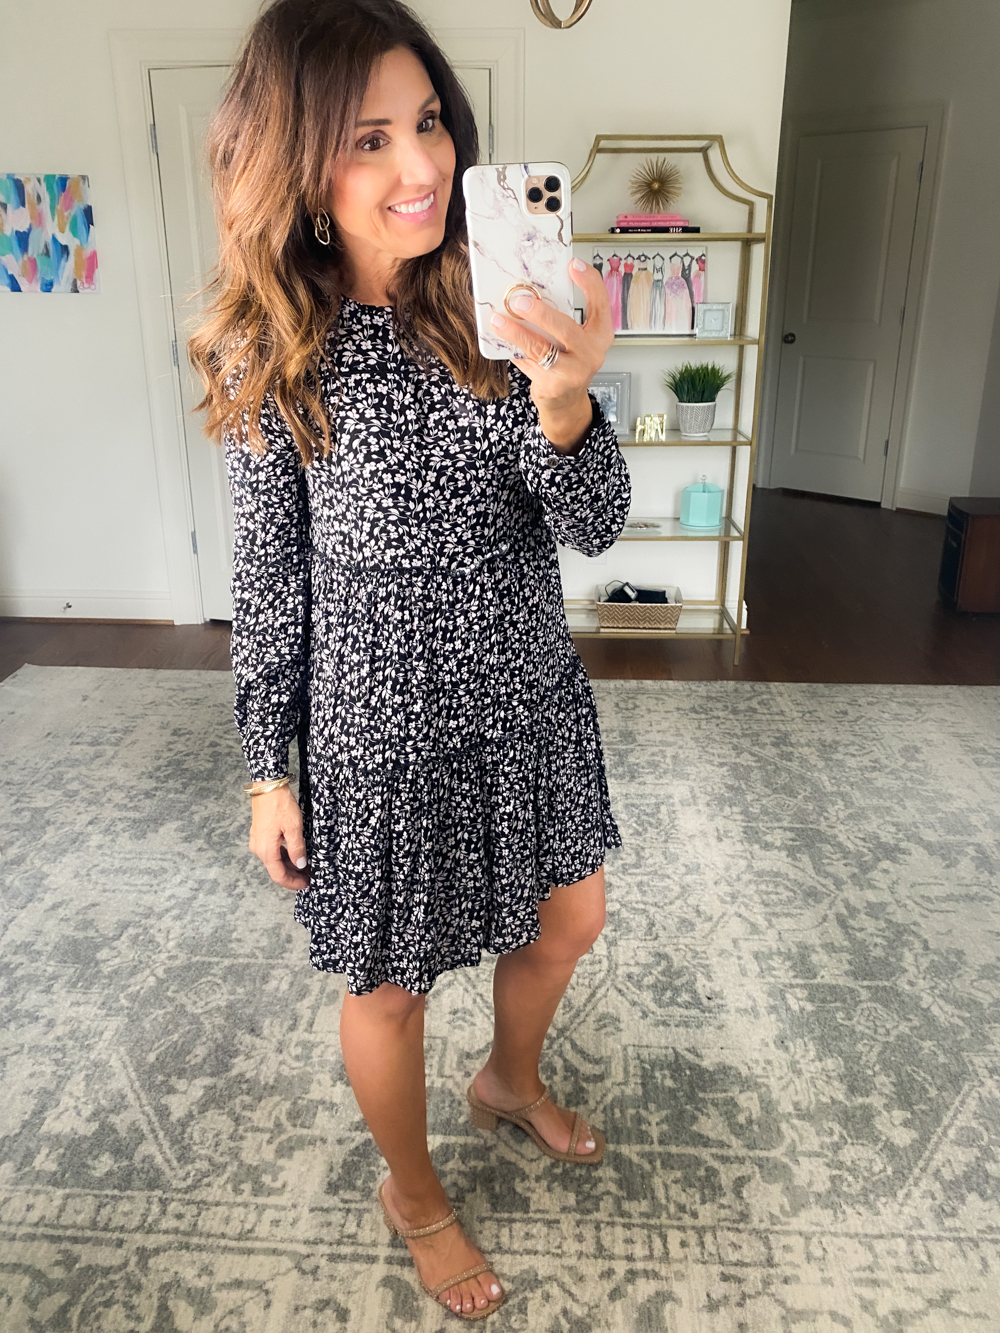 My Favorite Dresses for Women Over 40